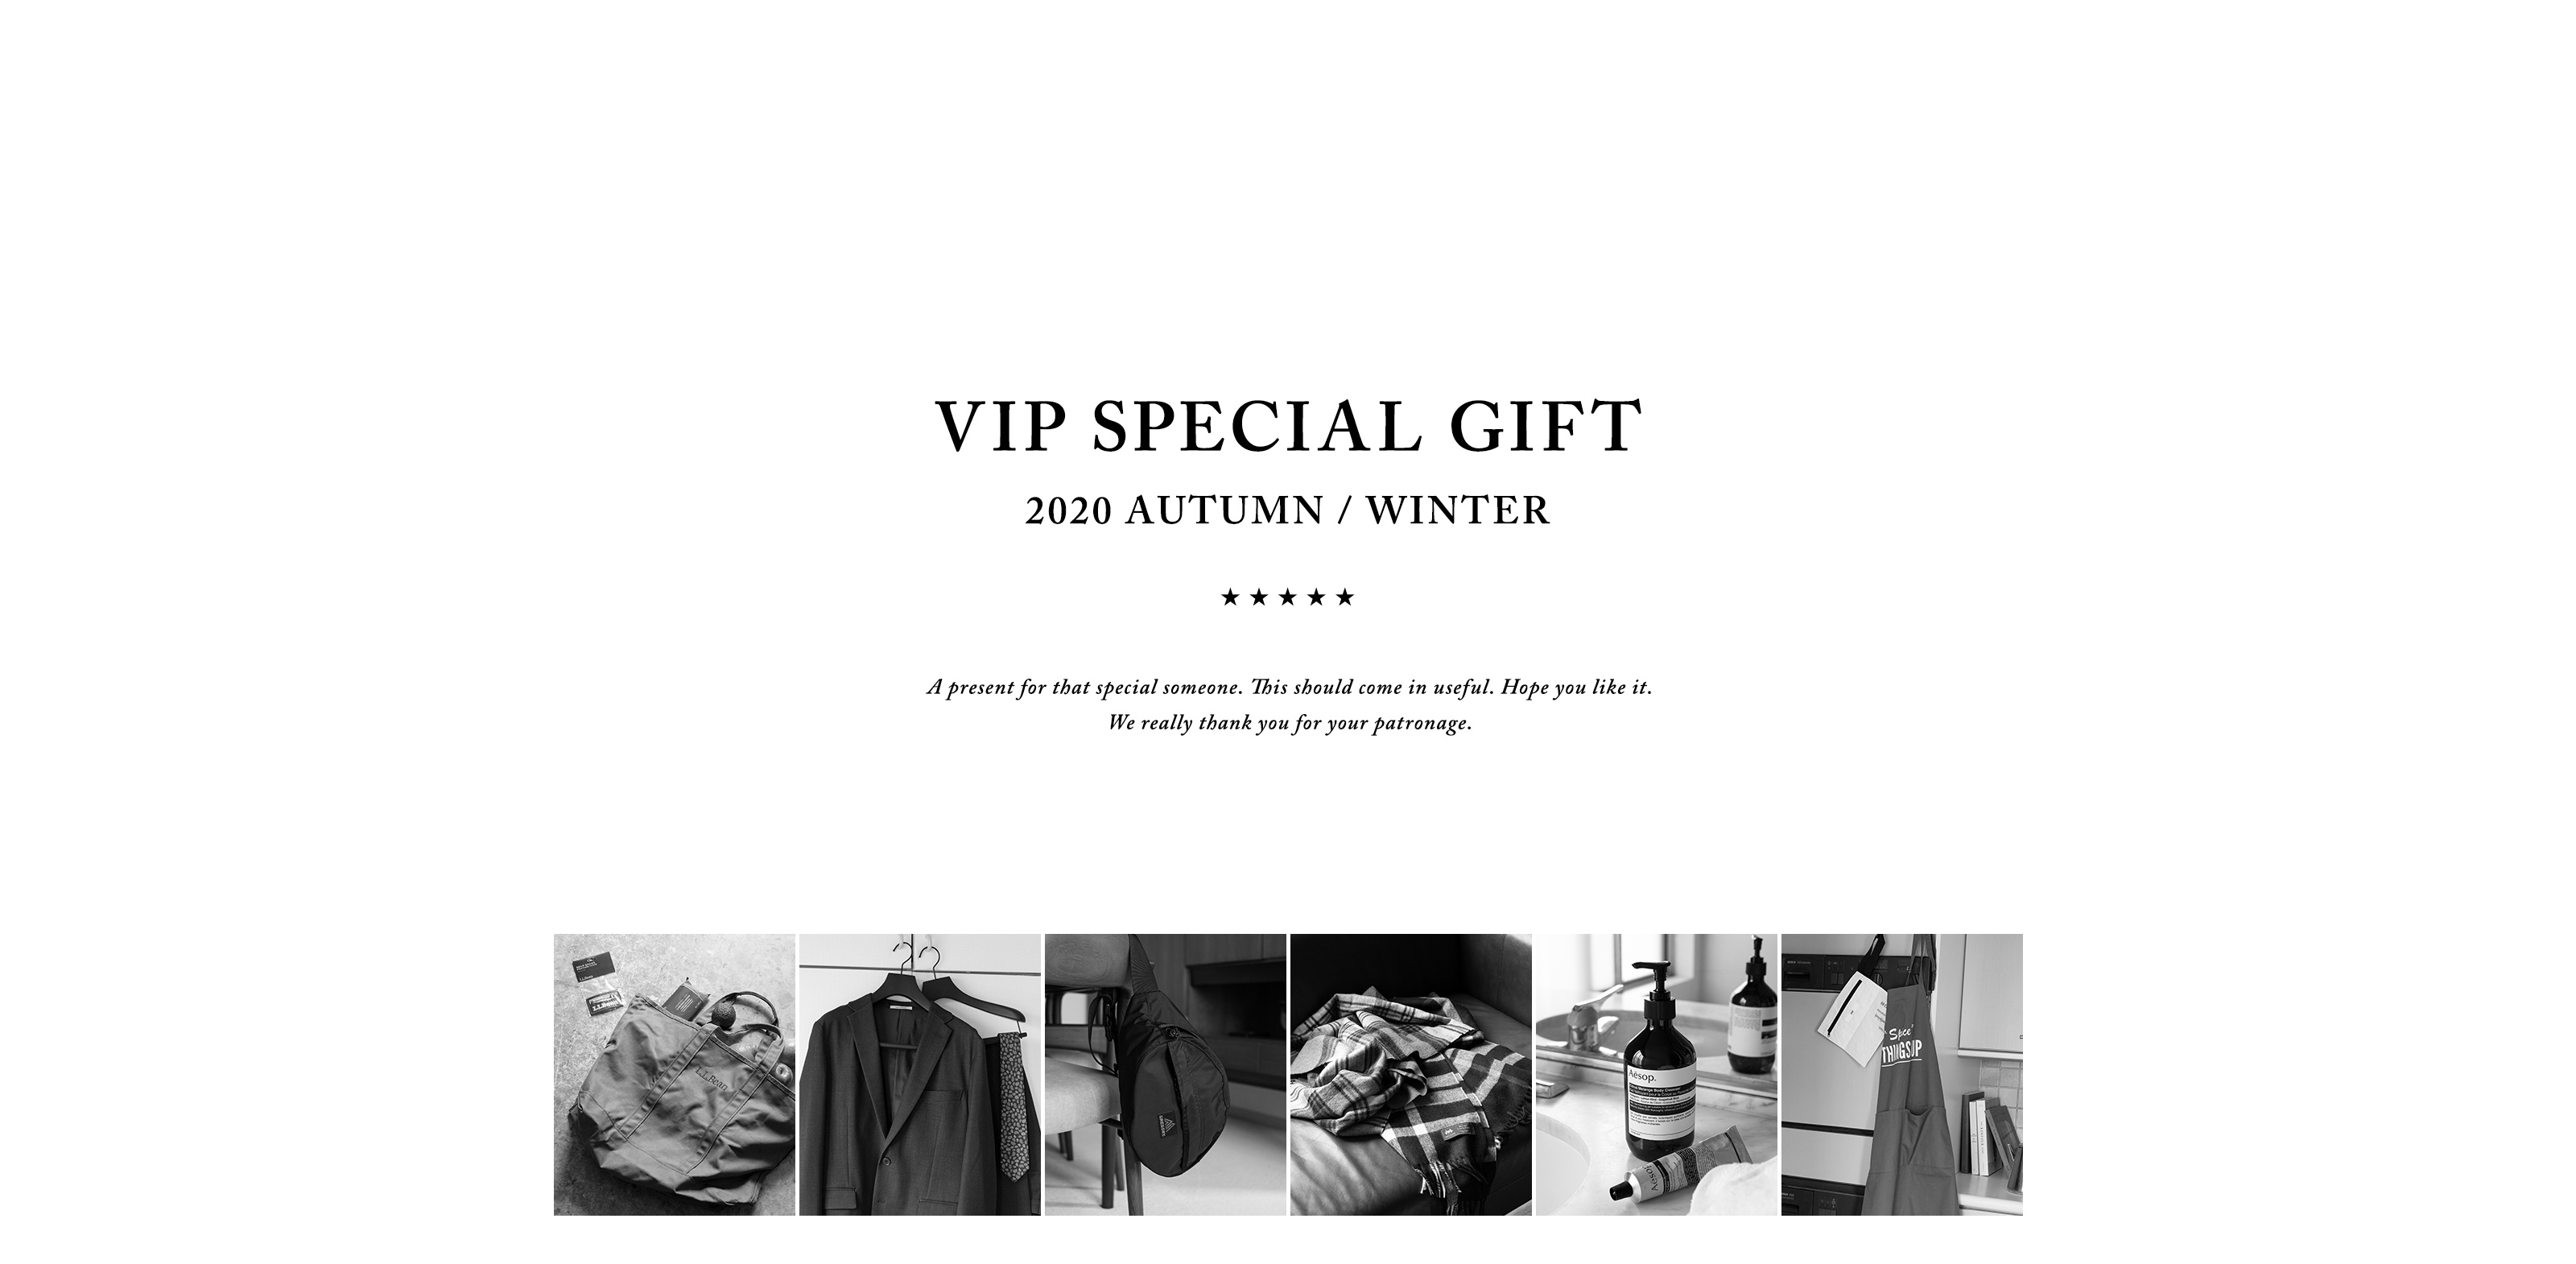 VIP SPECIAL GIFT 2020 SUMMER